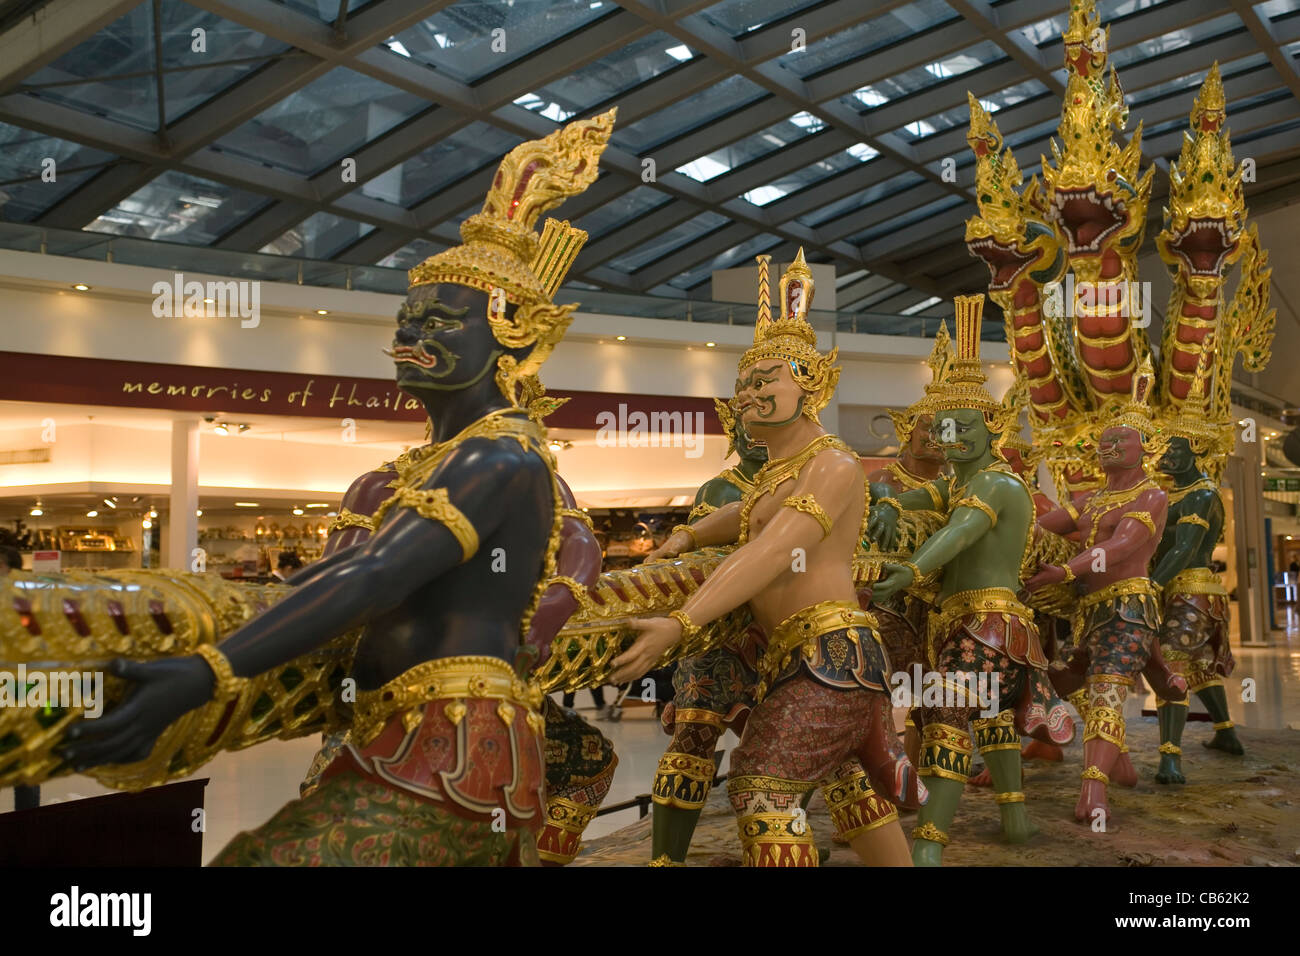 Suvarnabhumi Airport Stock Photos Suvarnabhumi Airport Stock